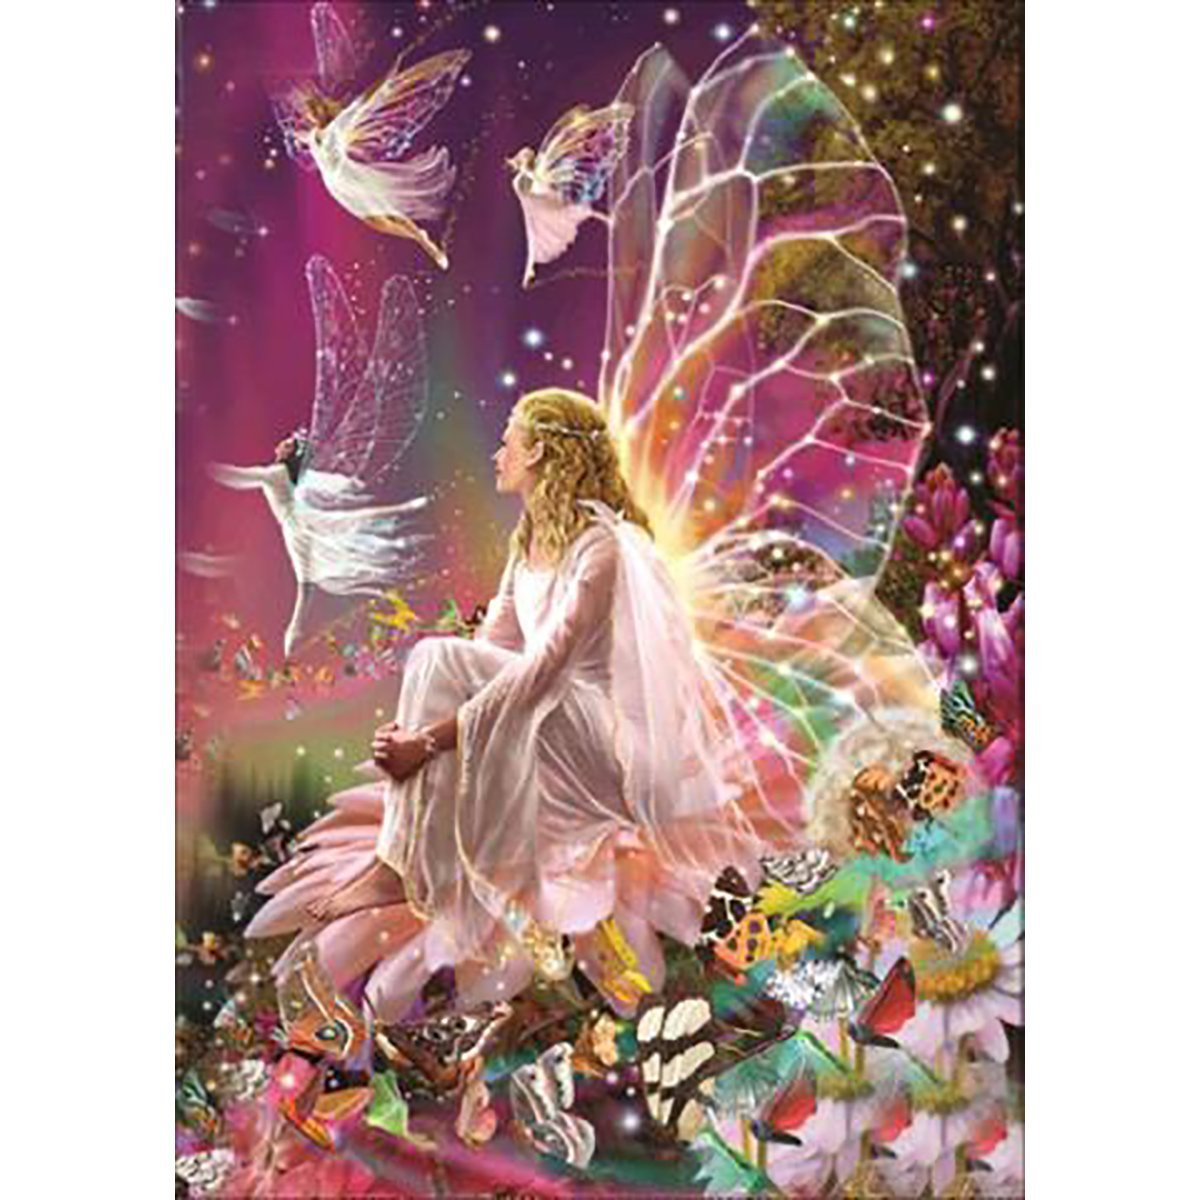 JCBABA DIY 5D Diamond Painting, Crystal Rhinestone Full Diamond Embroidery Pictures Arts Craft for Home Wall Decor Fairy Queen on The Flower 11.8 x 15.7 (Pattern -A) ADSDJ001